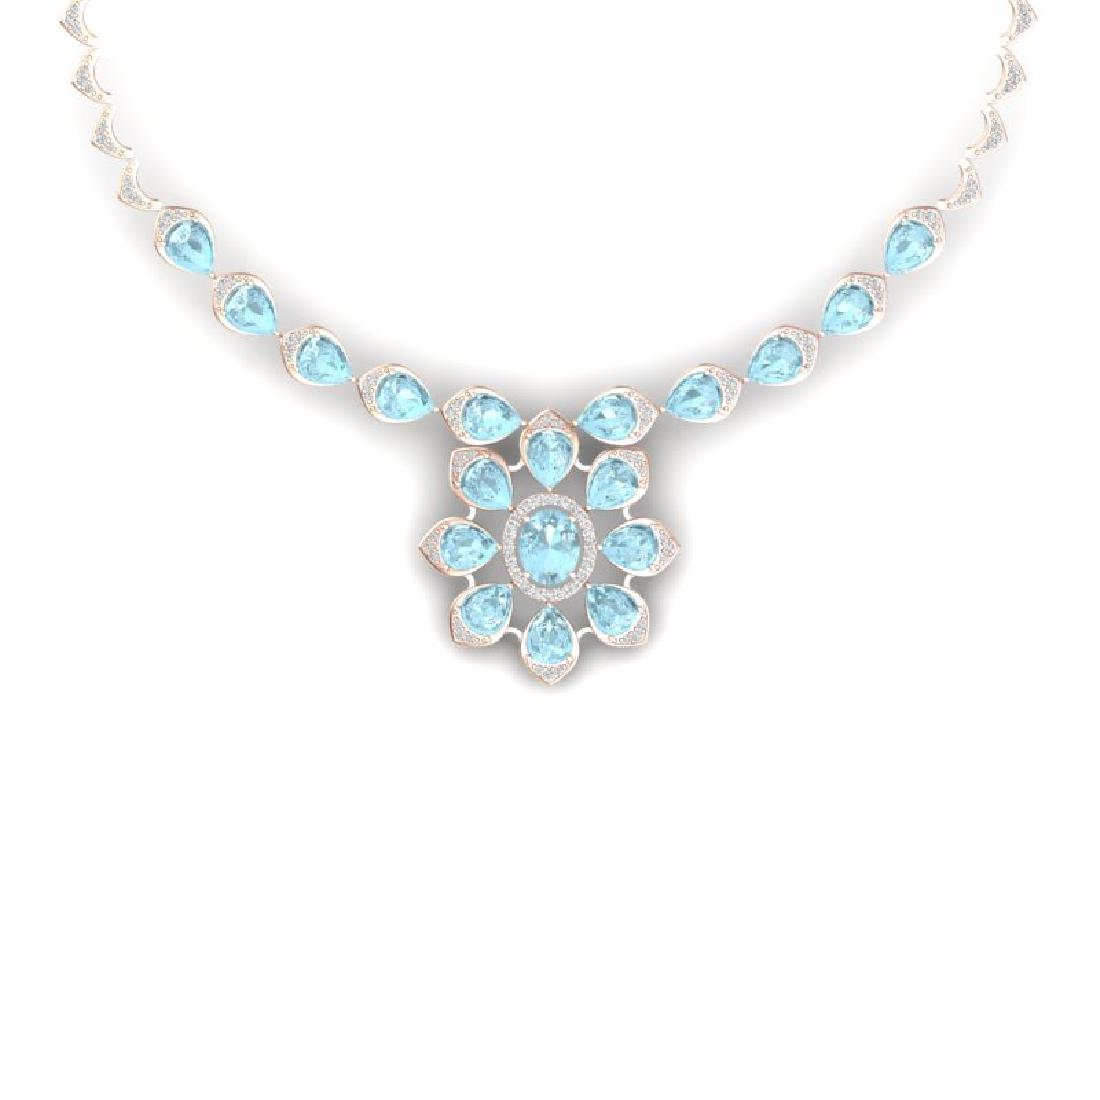 29.34 CTW Royalty Sky Topaz & VS Diamond Necklace 18K